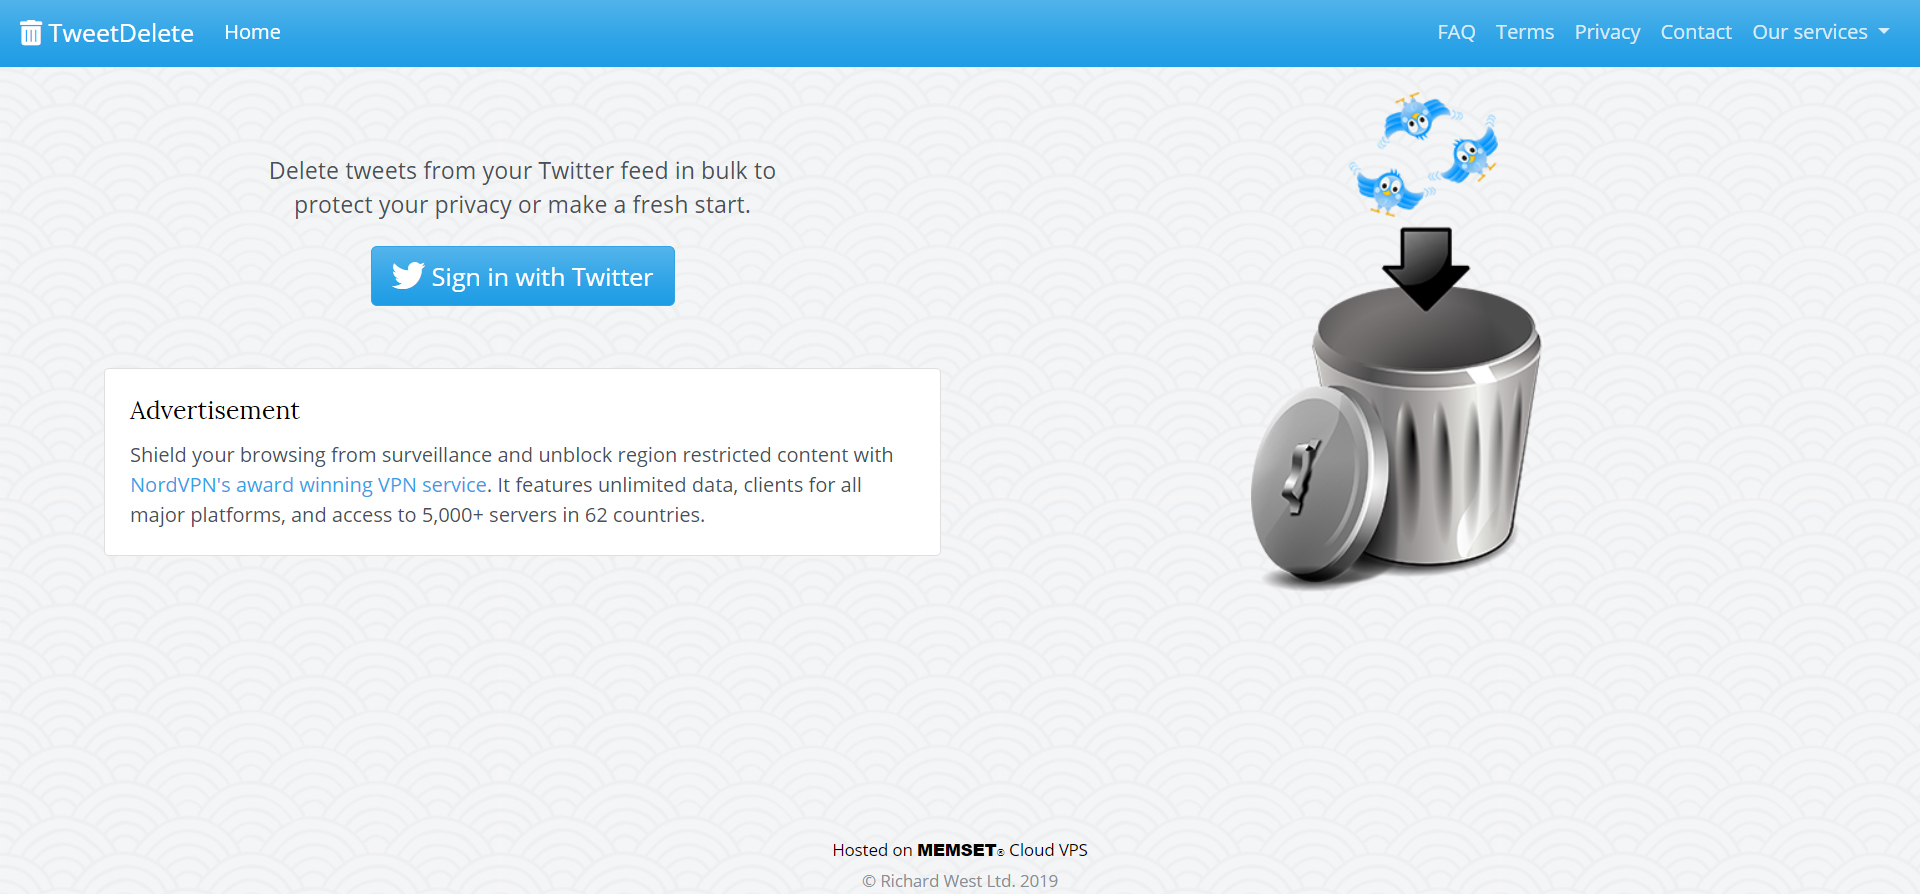 Delete tweets from your Twitter feed in bulk to protect your privacy or make a fresh start.